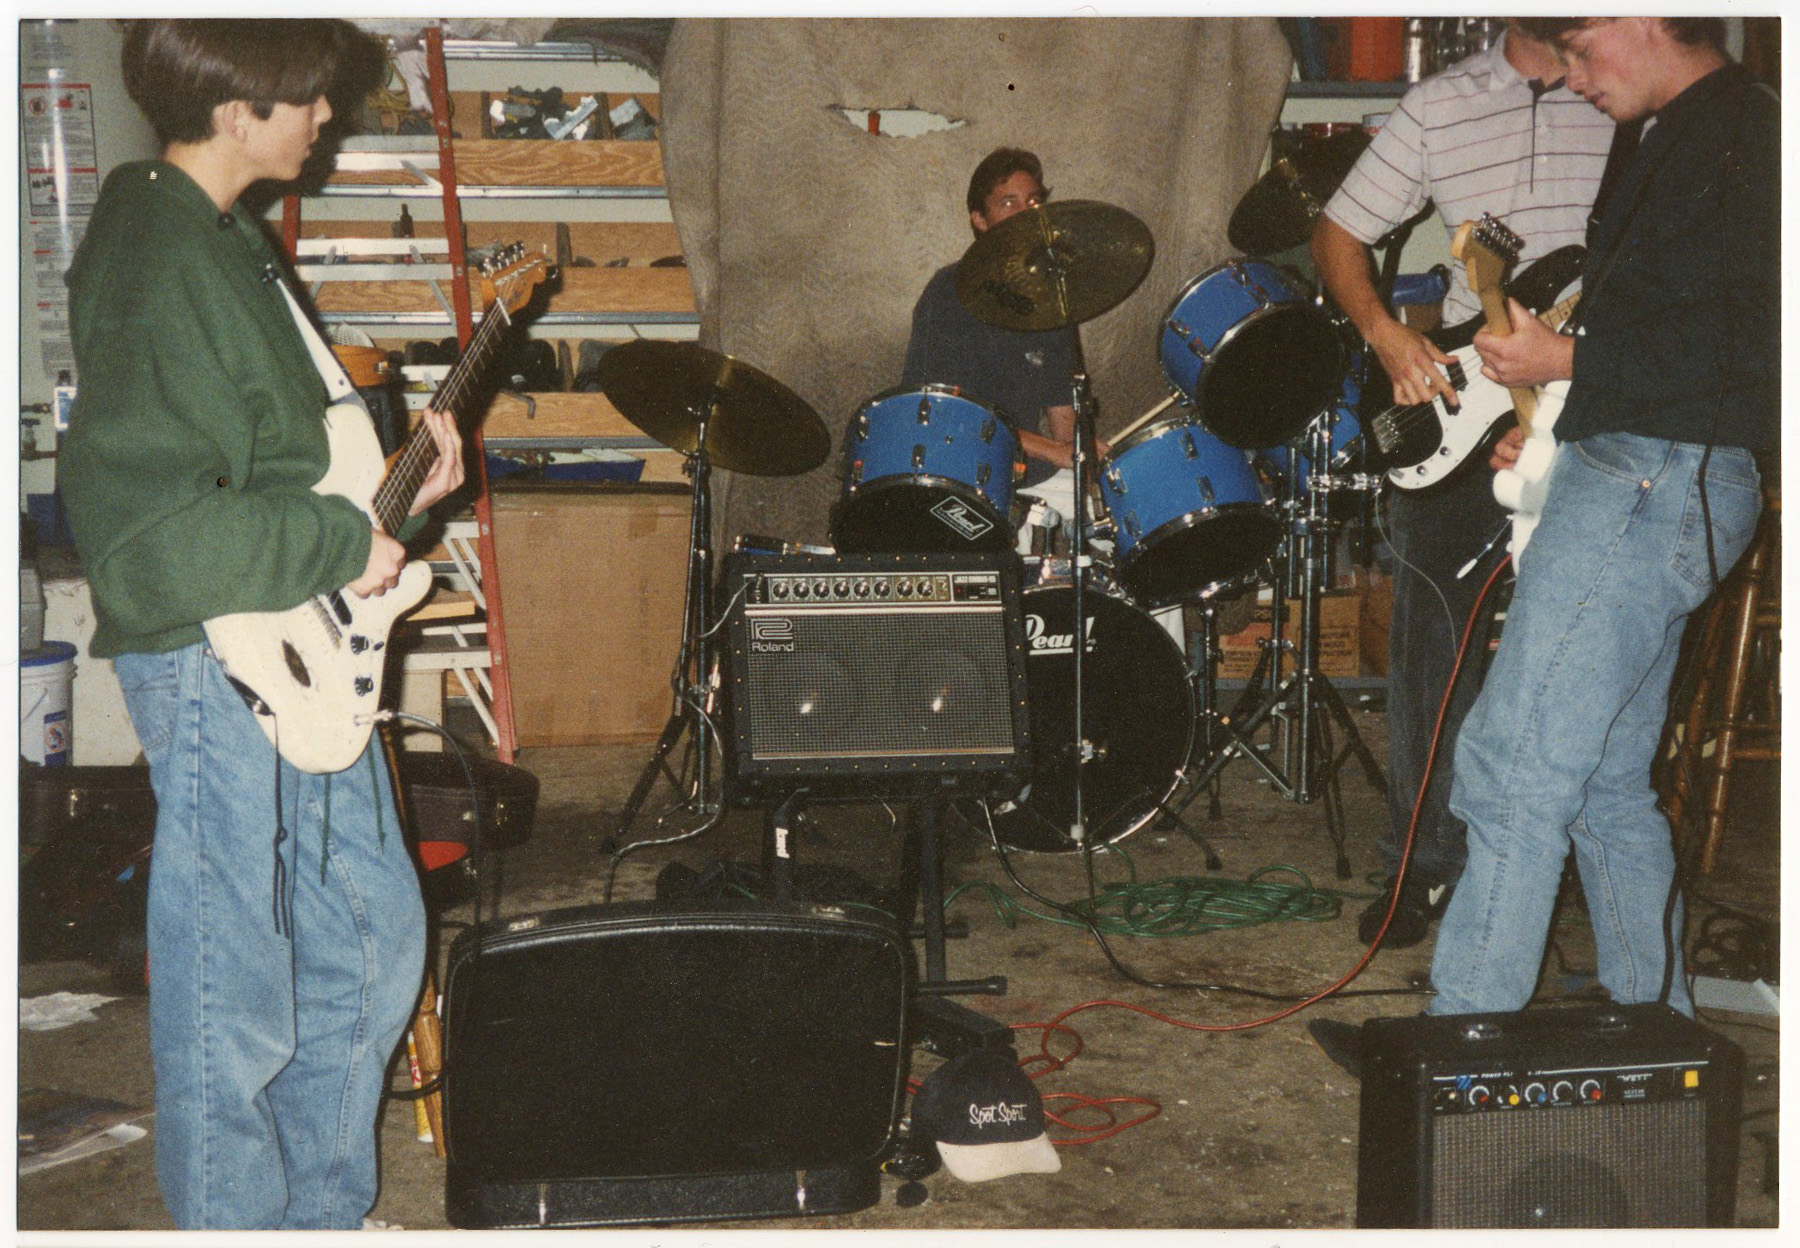 band practice in garage